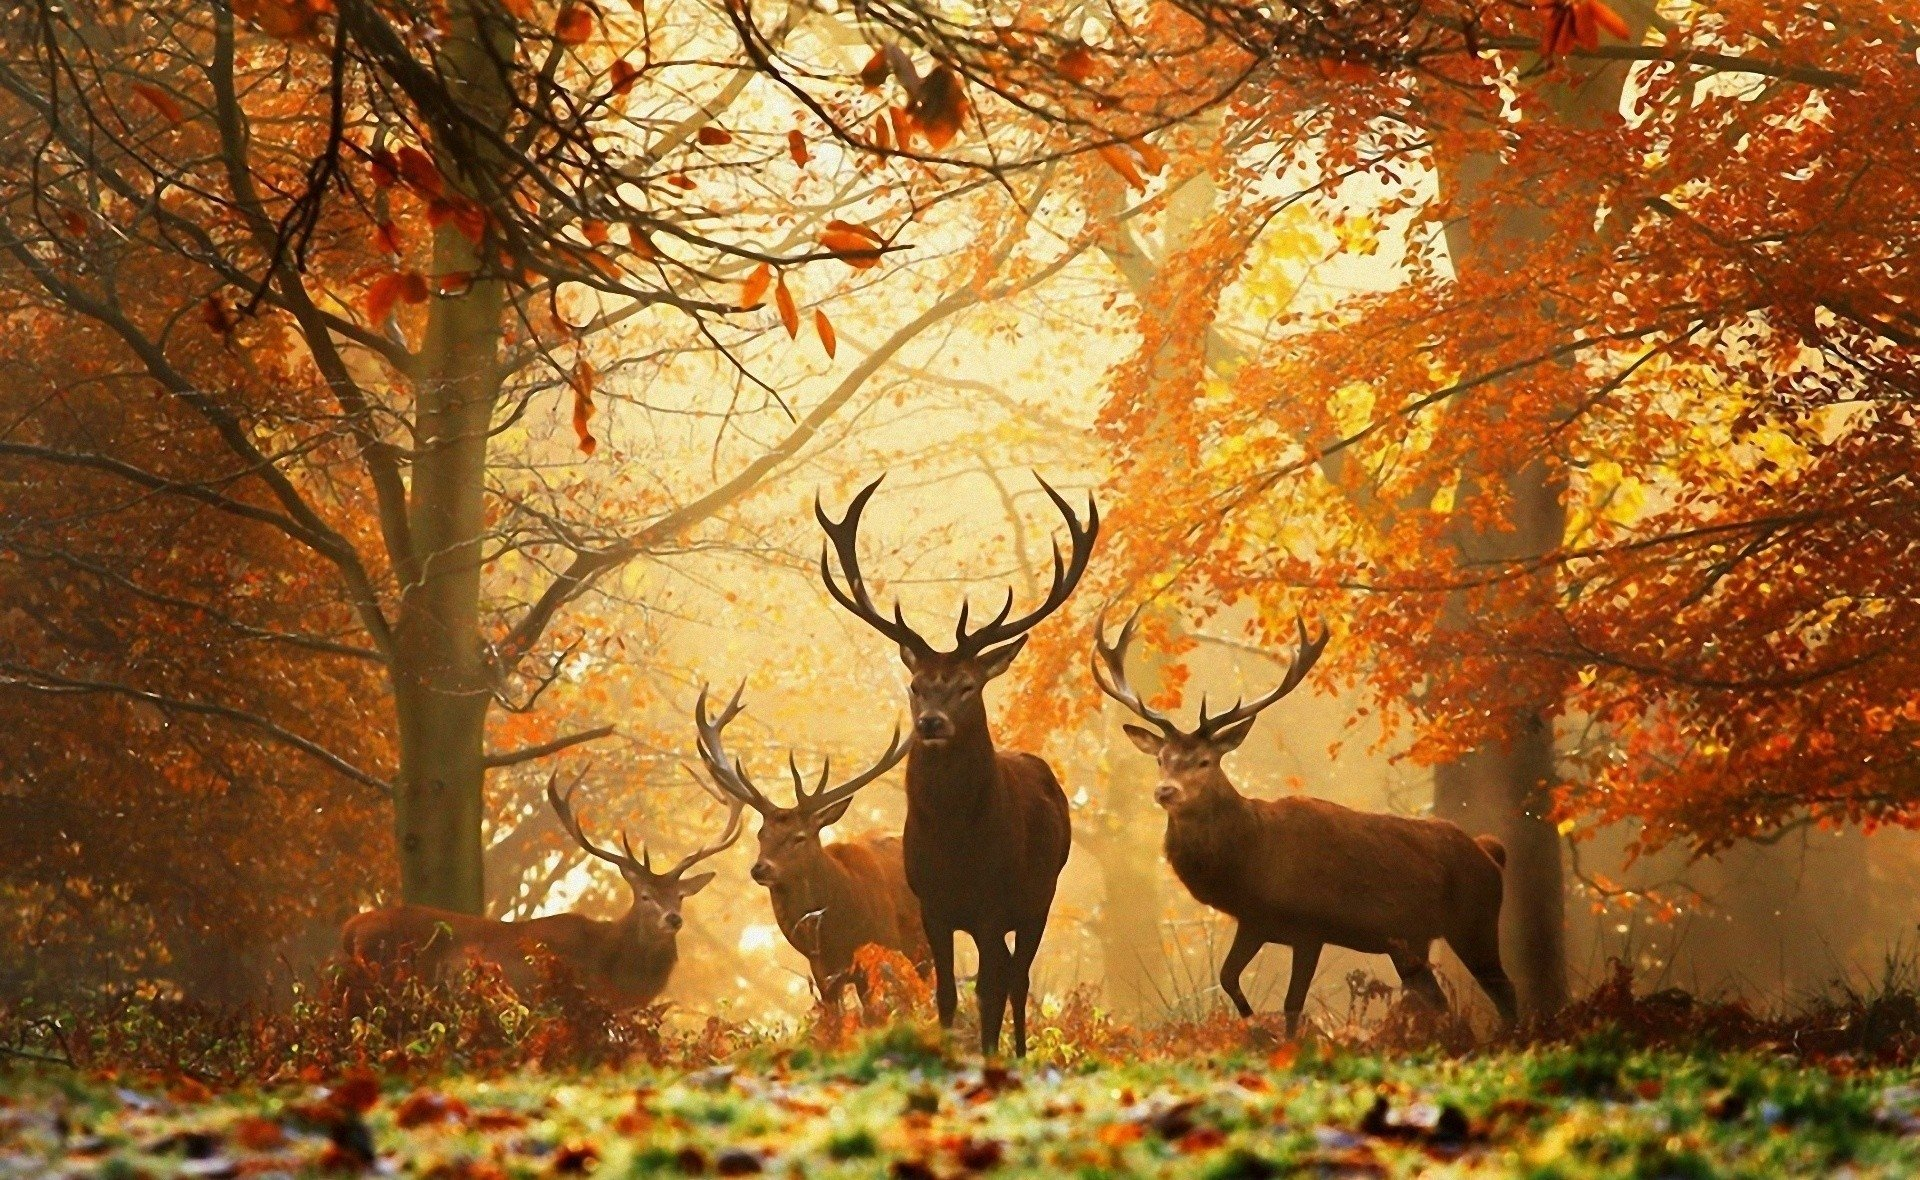 Wallpaper Of Deer